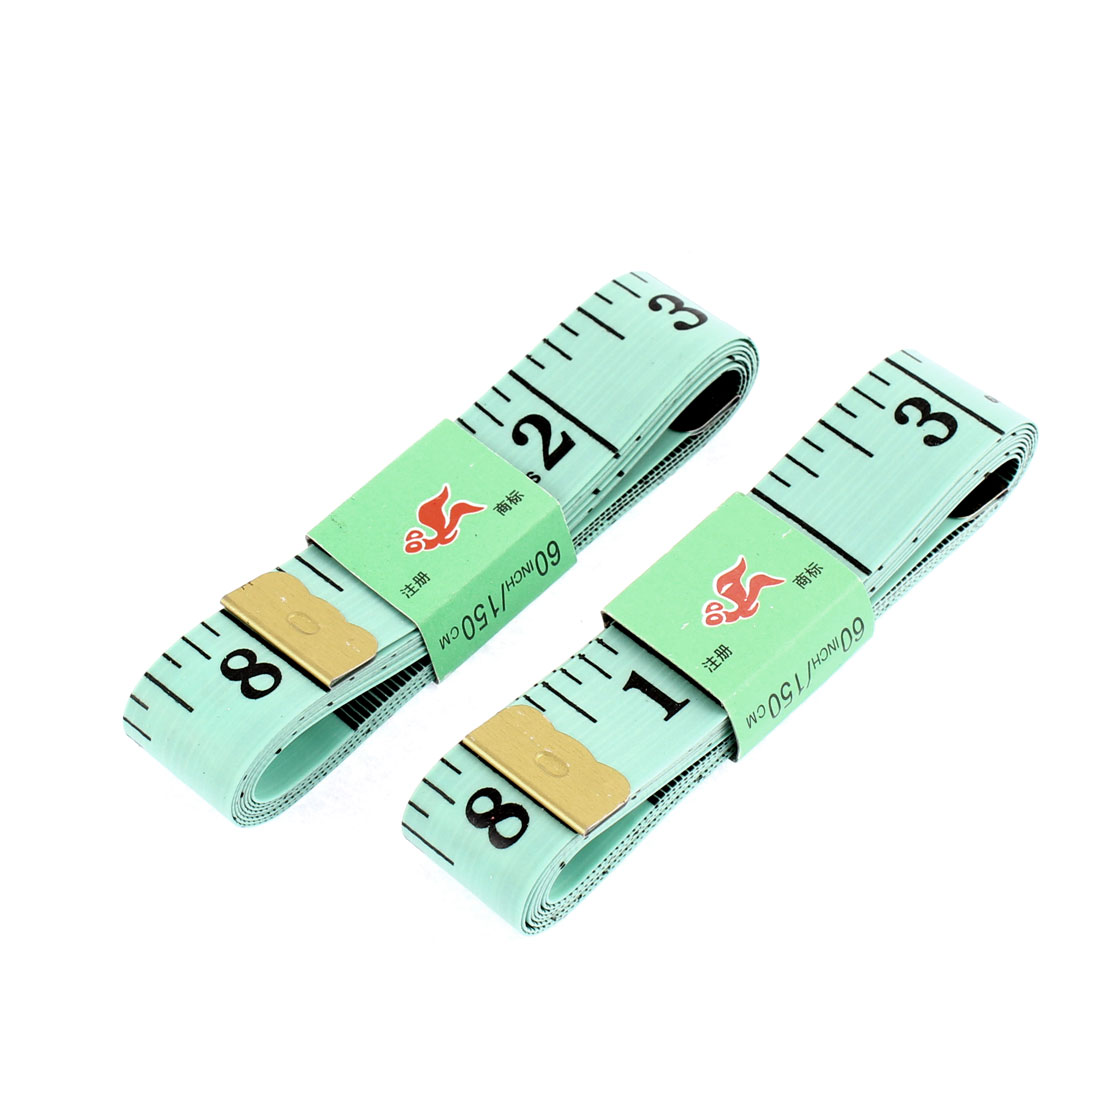 Body Measuring Tape Tailor Sewing Soft Measure Ruler 1.5M 60 Inch 2 Pcs Green